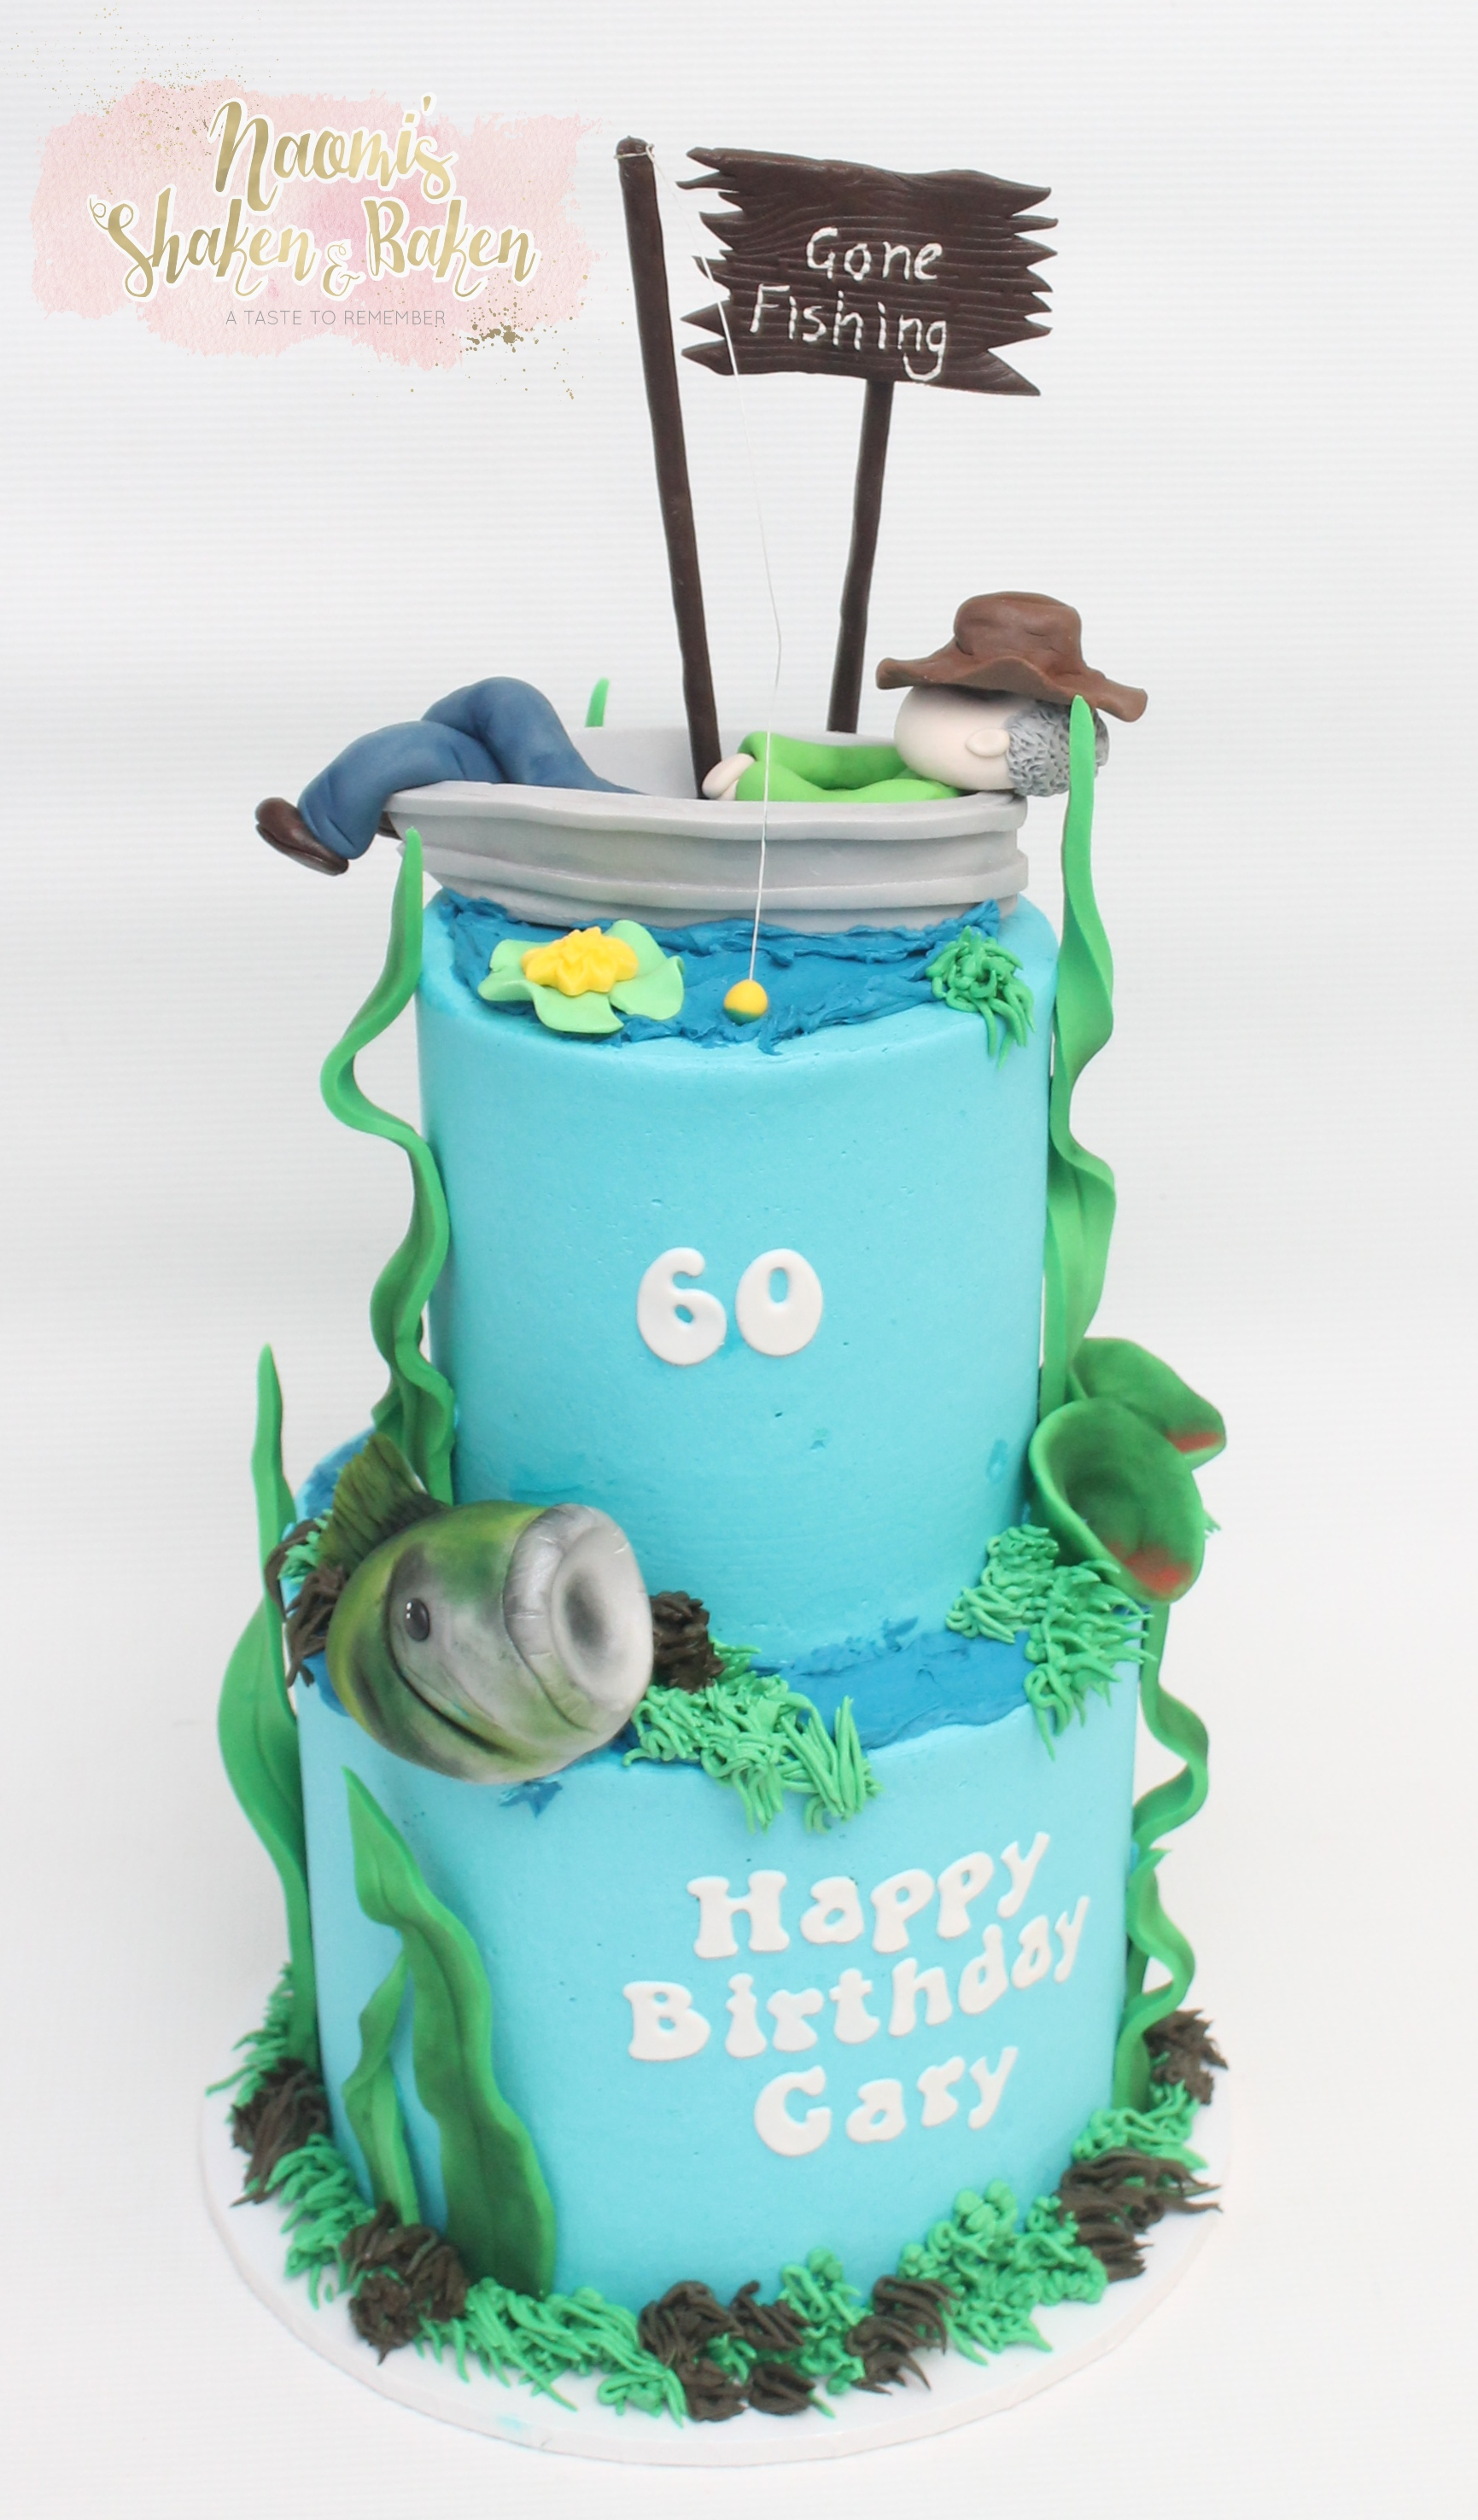 Fishing cake Caboolture